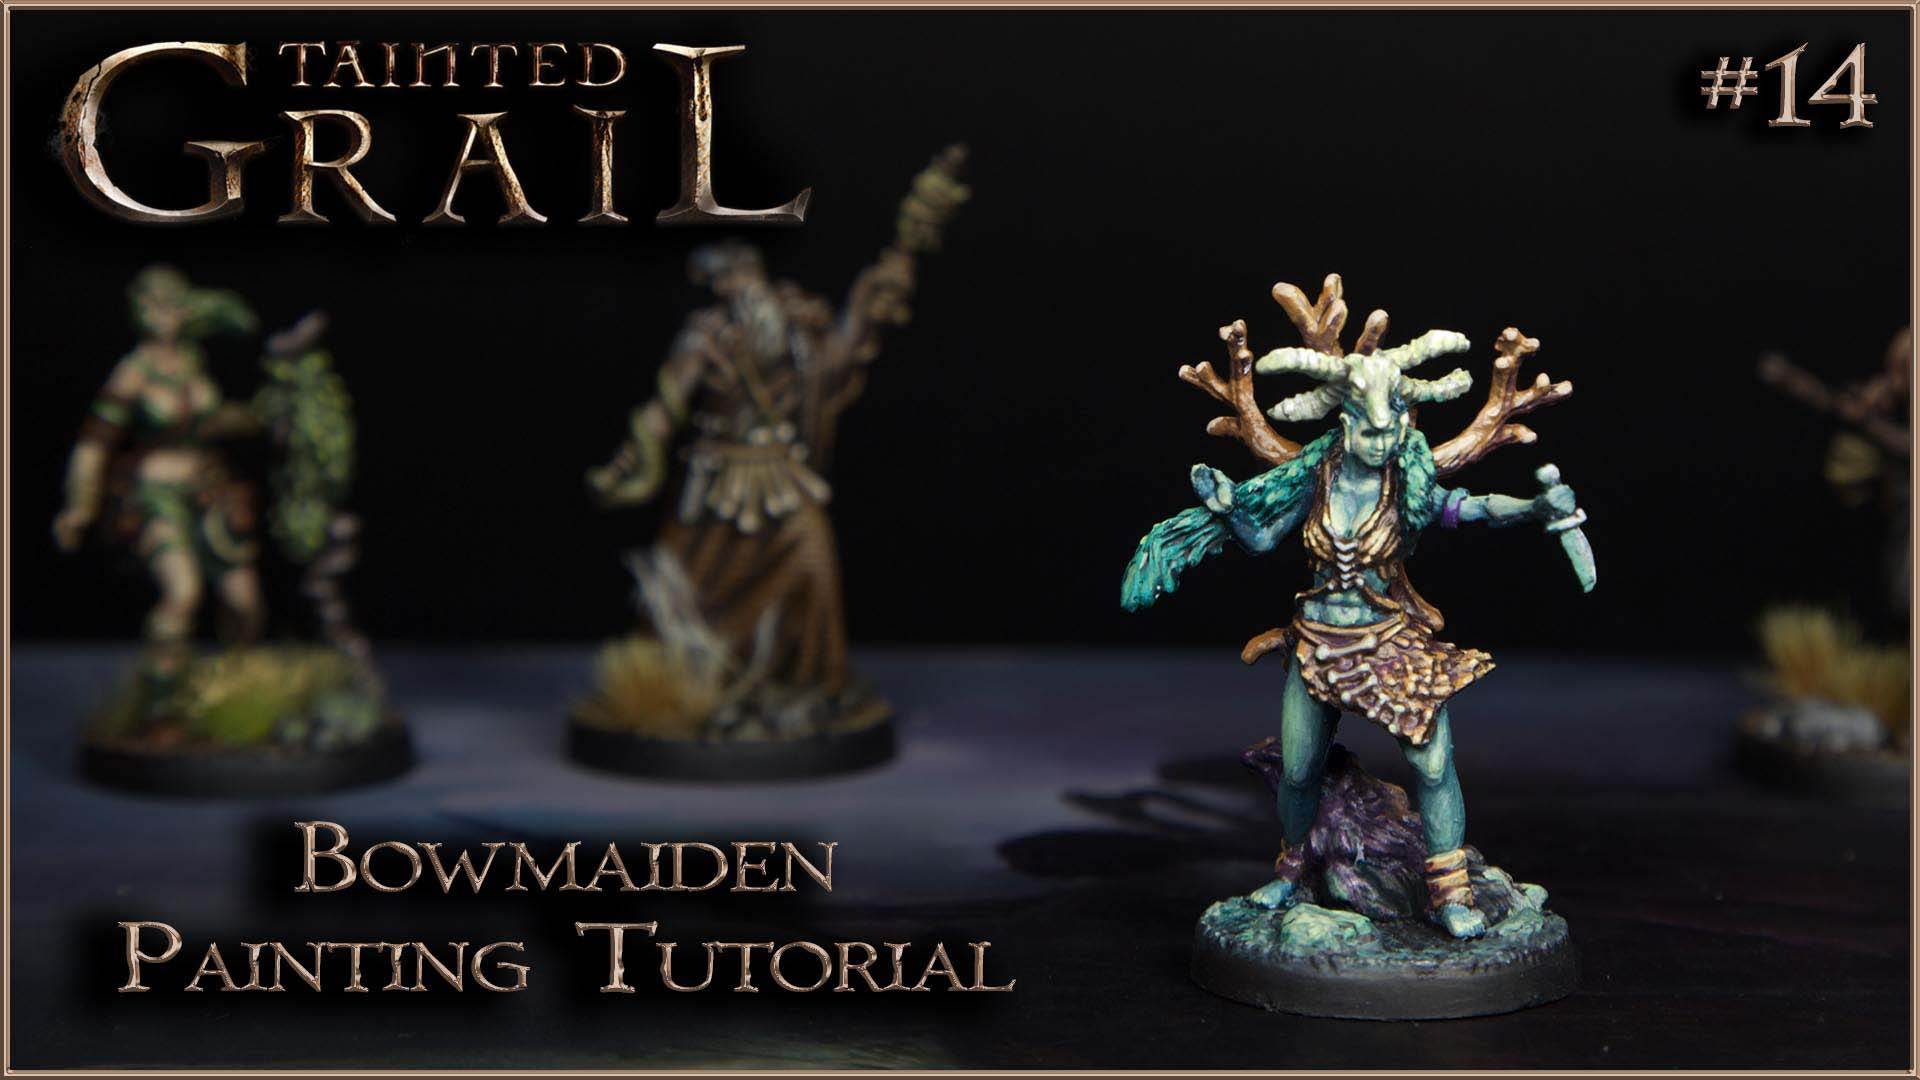 Kiki's Miniatures Mania – Tainted Grail ep.14 – Come dipingere Bowmaiden